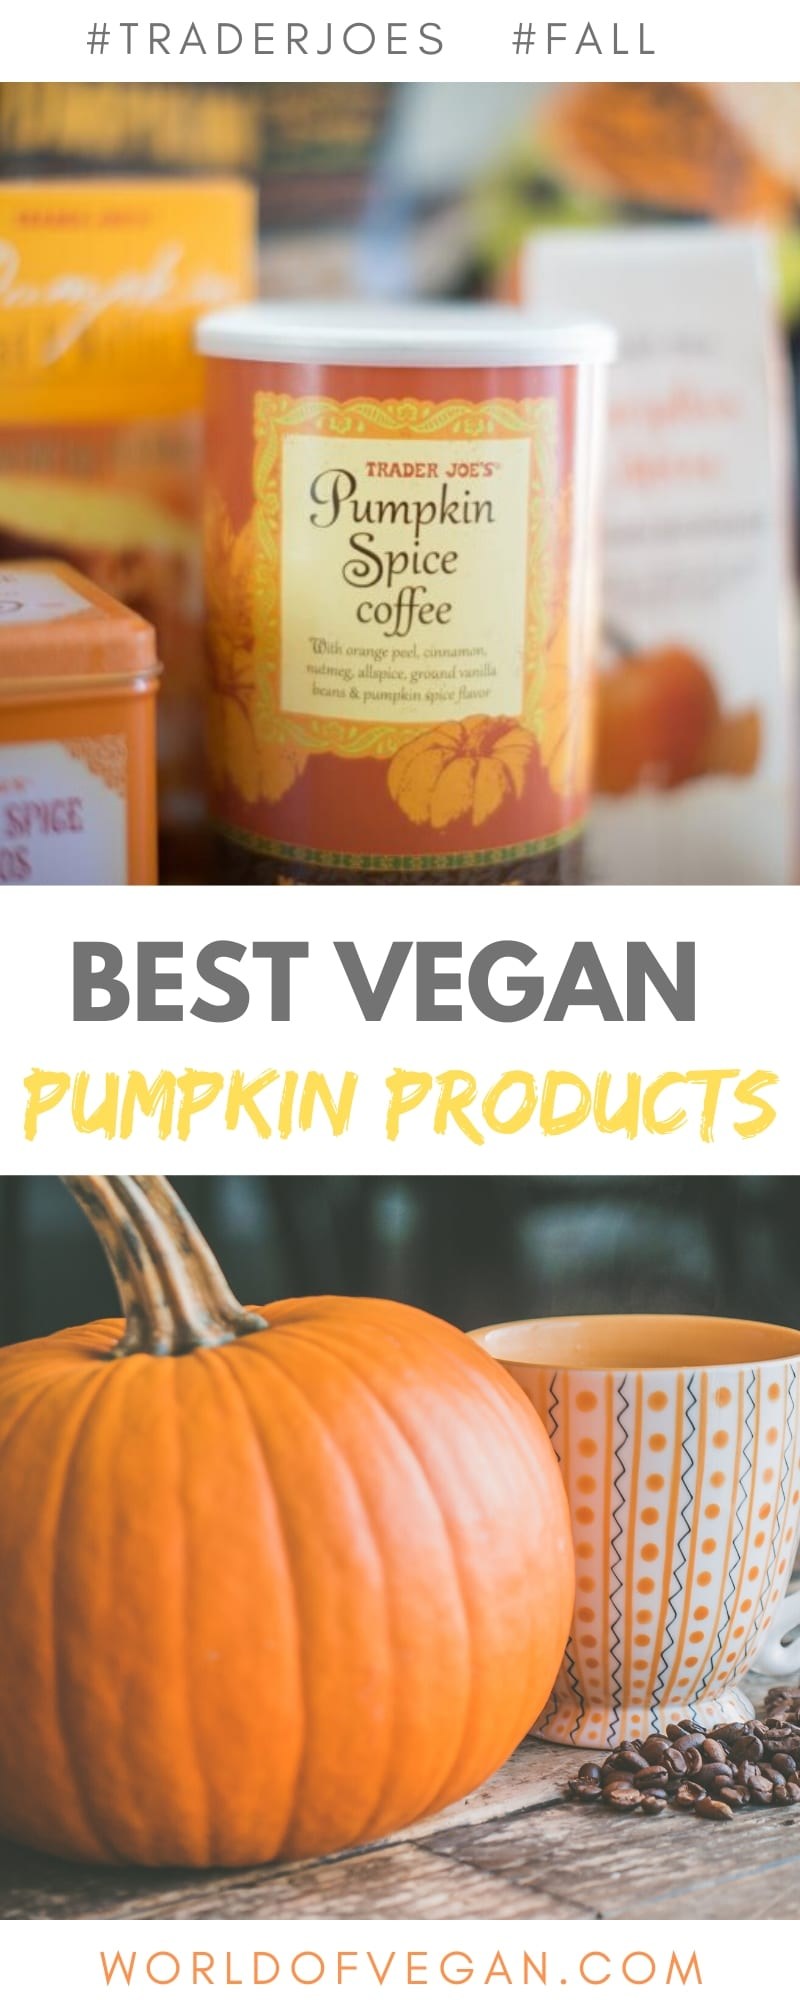 10 Best Vegan Pumpkin Products at Trader Joe's | World of Vegan | #pumpkin #vegan #products #tradejoes #shopping #guide #worldofvegan